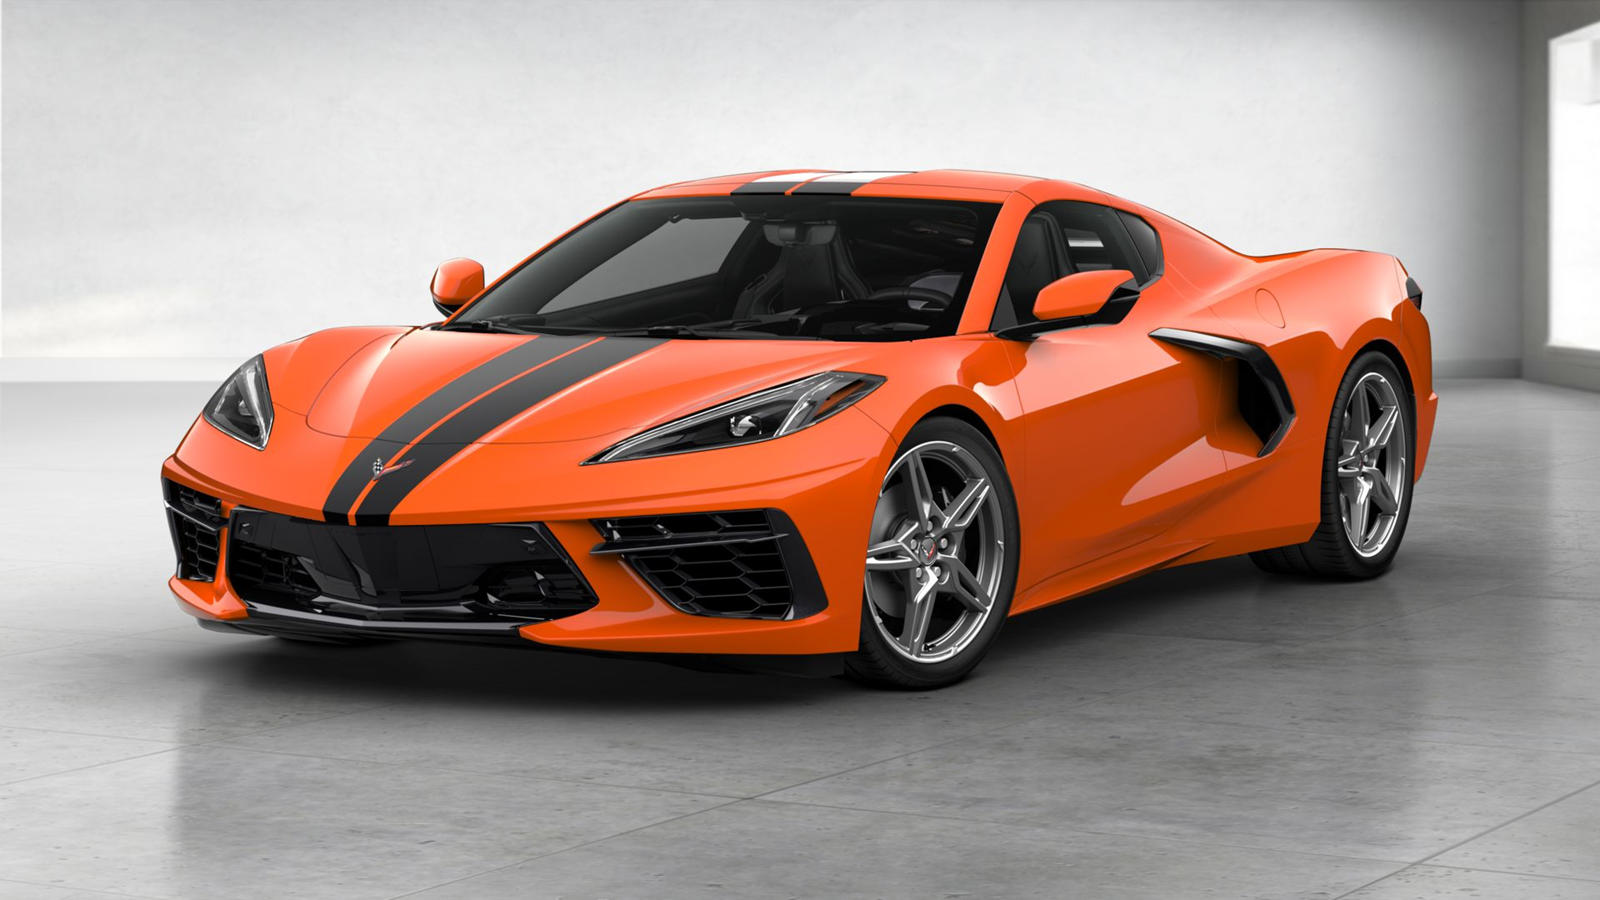 Costco Is Getting An Exclusive 2020 Corvette